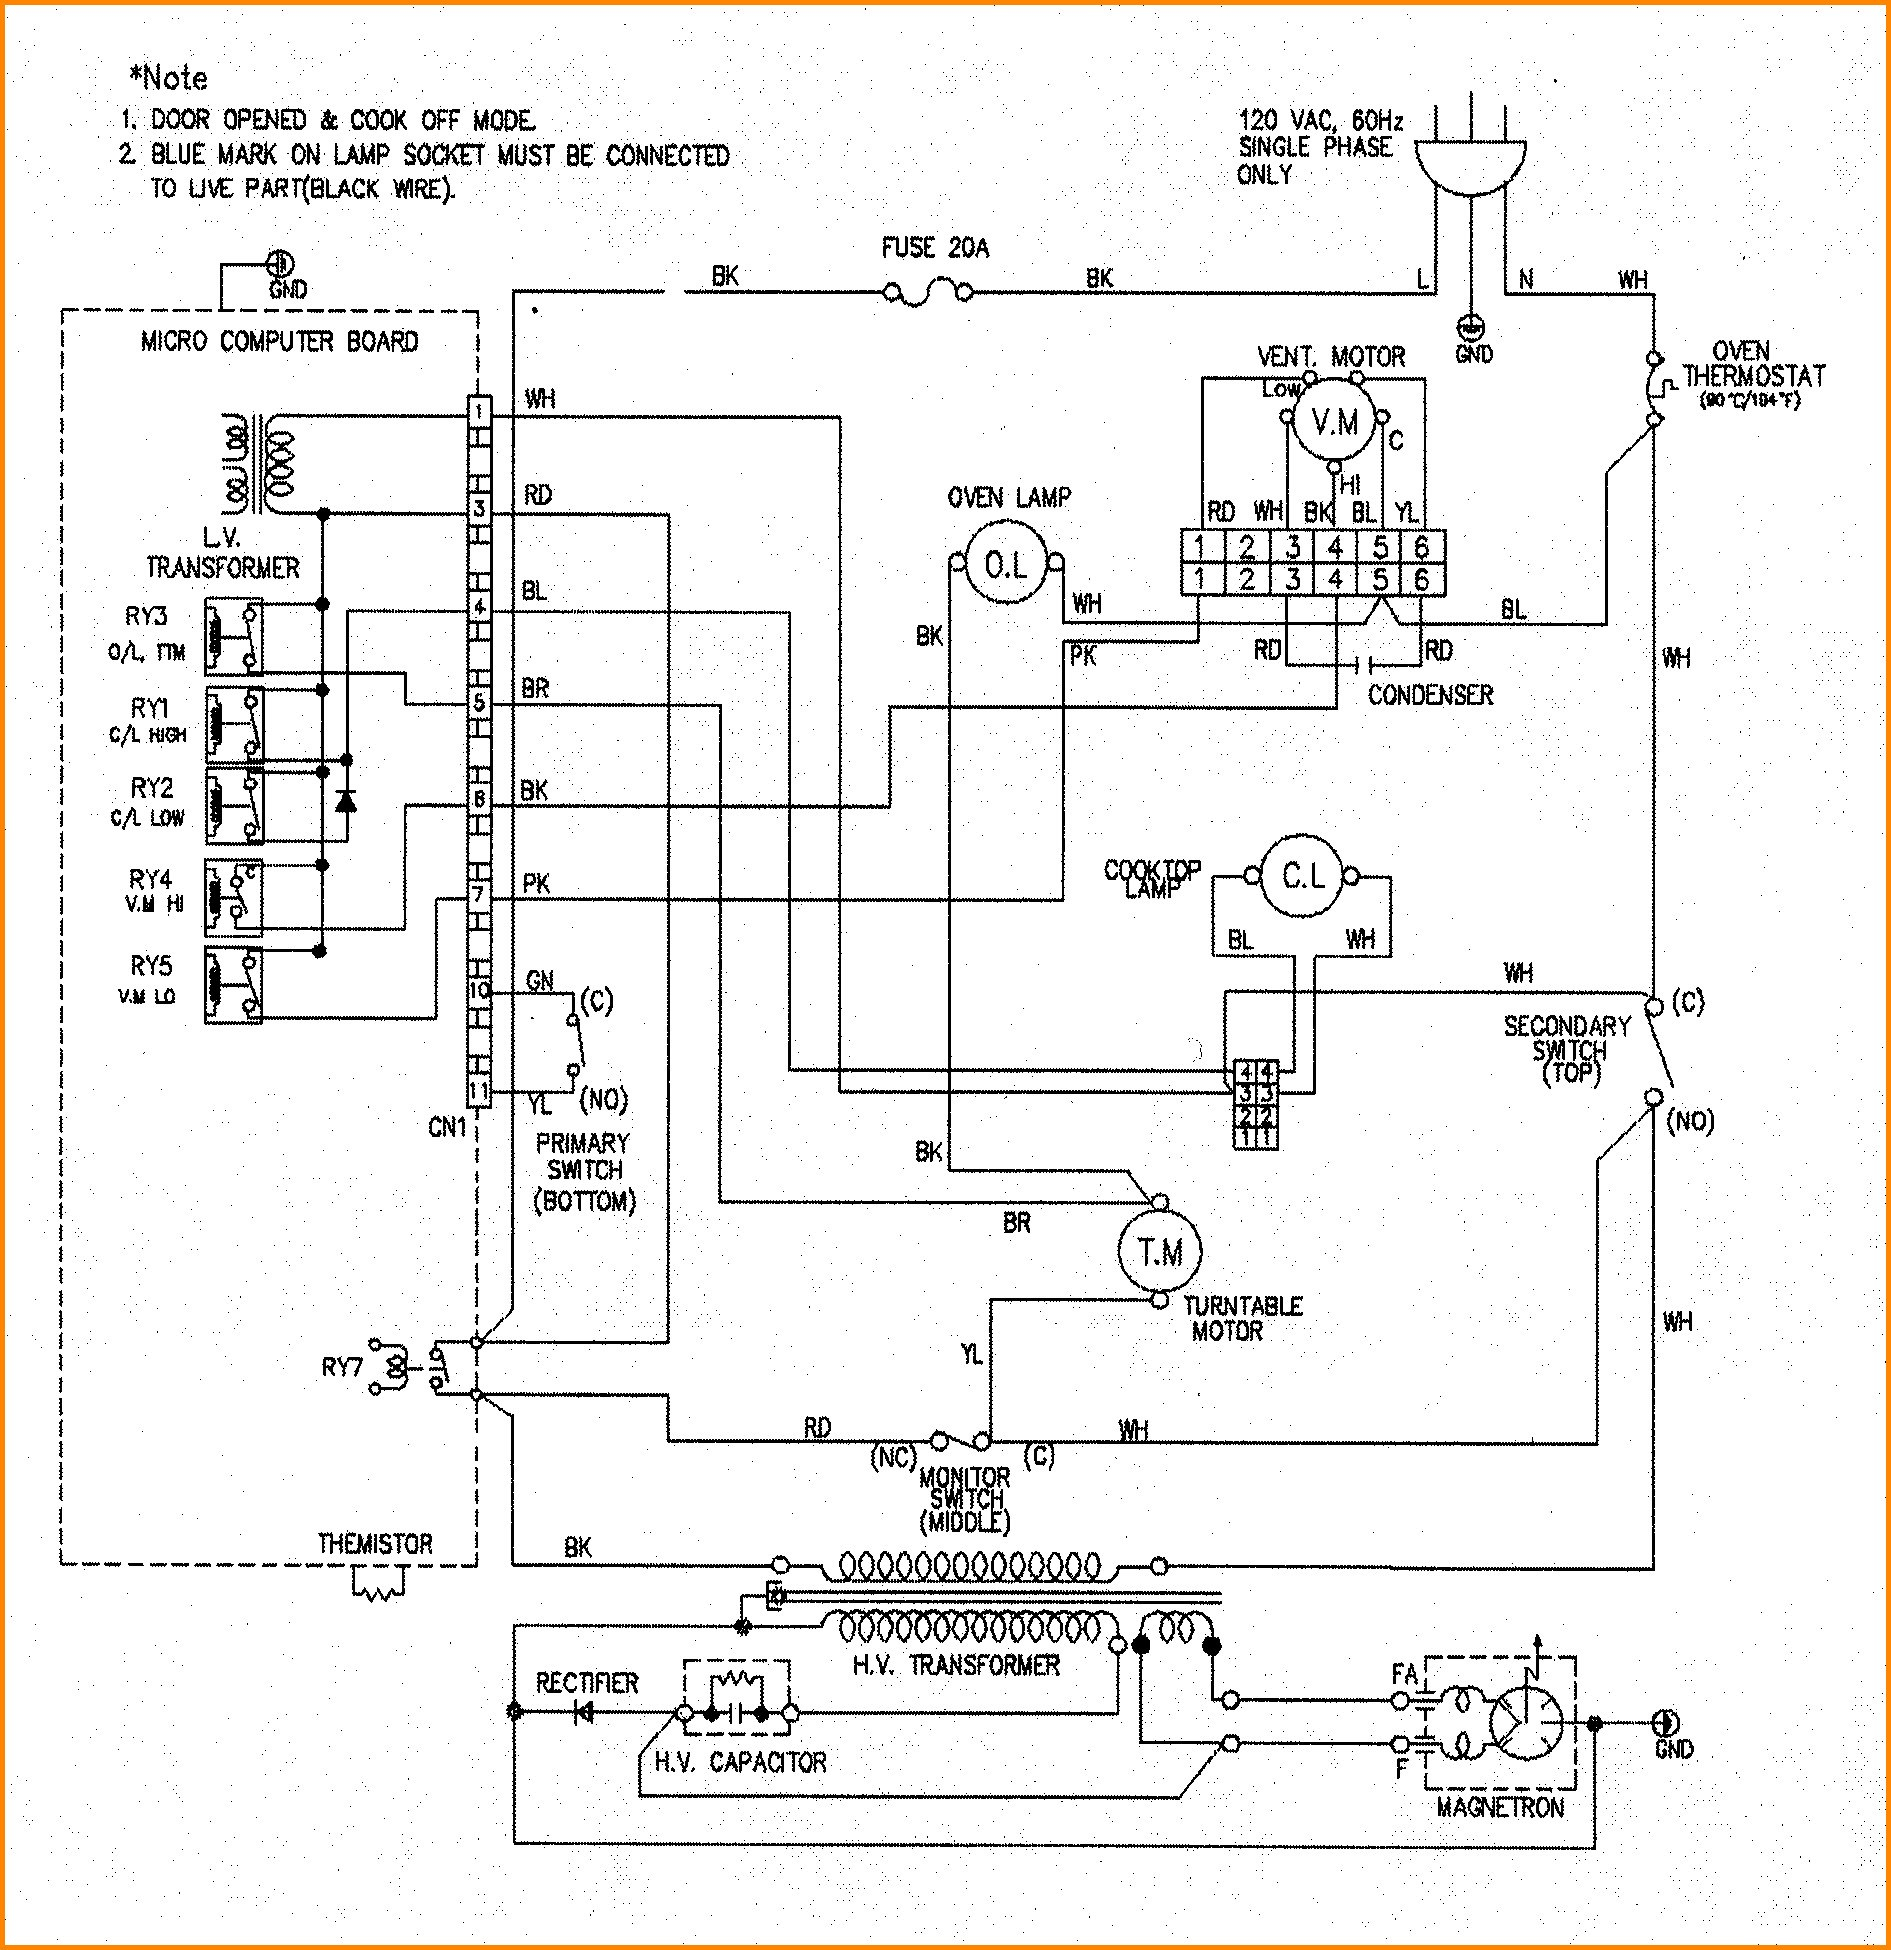 Whirlpool Cooktop Wiring Diagrams on whirlpool cooktop rf302bxgw, hopper installation diagrams, whirlpool defrost timer wiring diagram, electric cooktop wiring diagrams, whirlpool dishwasher diagram, whirlpool oven wiring diagram, whirlpool estate refrigerator wiring schematic, whirlpool cooktop installation, whirlpool cooktop accessories,